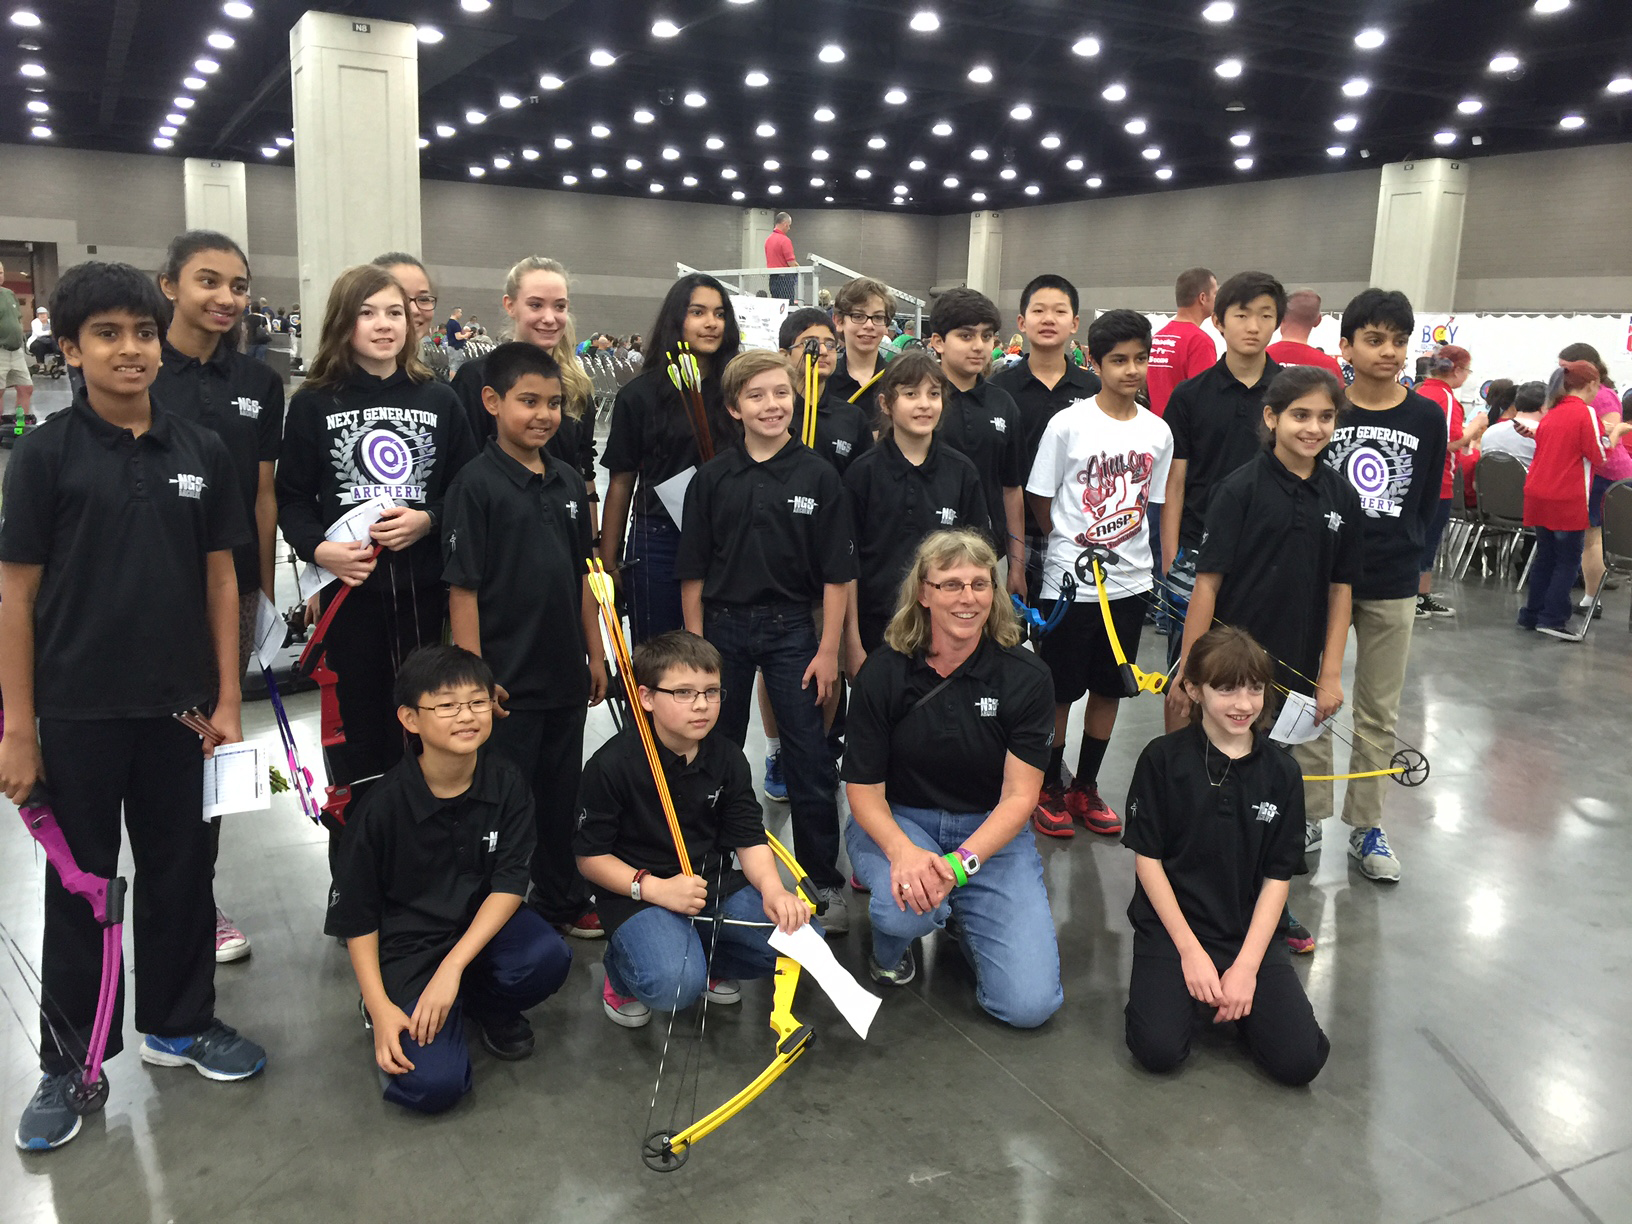 Archery: Elementary team wins first place at 2017 State Tournament